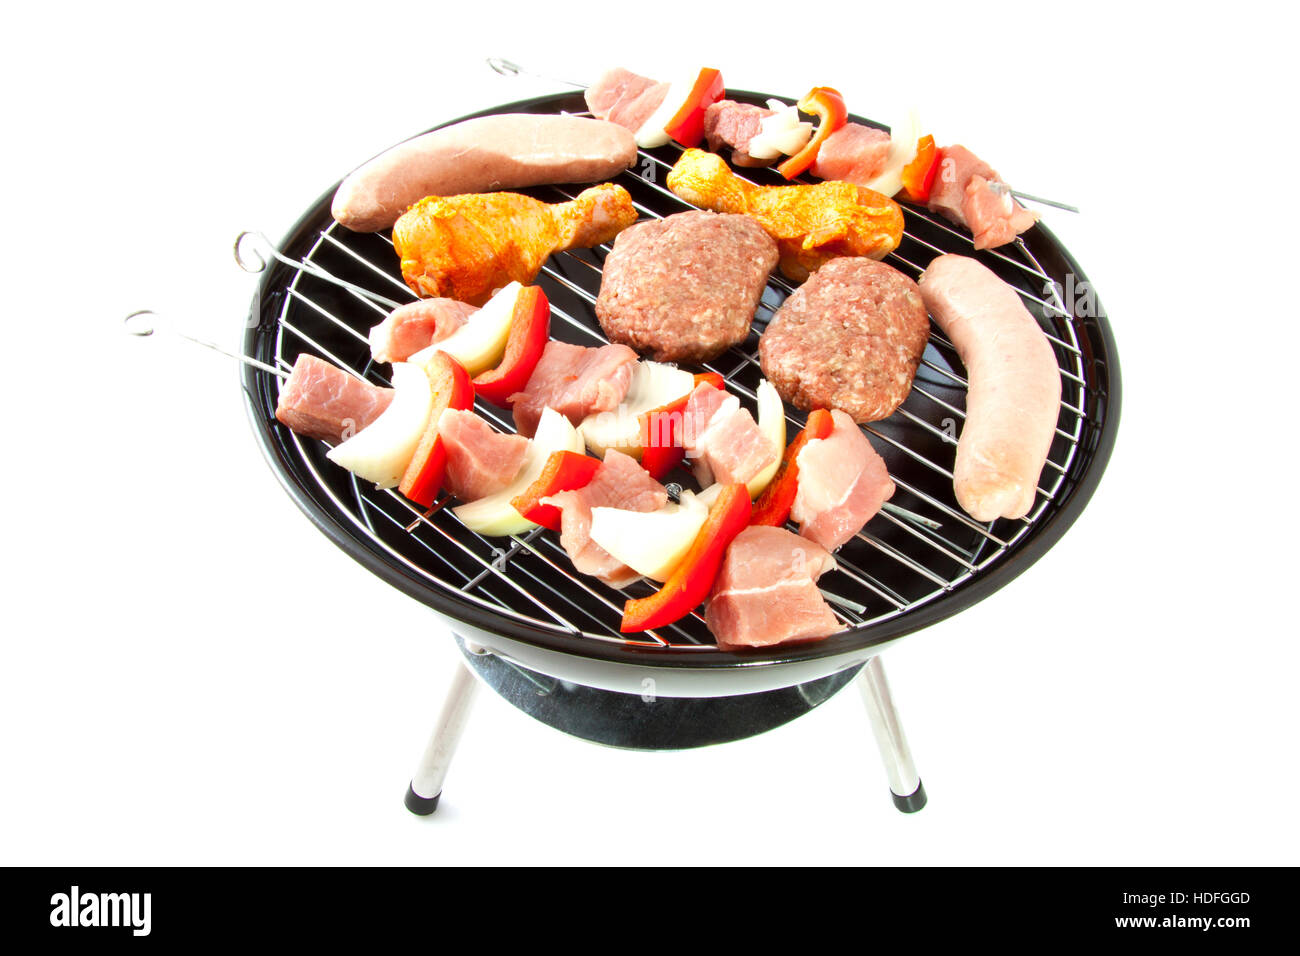 Different kind of meat on a bbq isolated over white - Stock Image